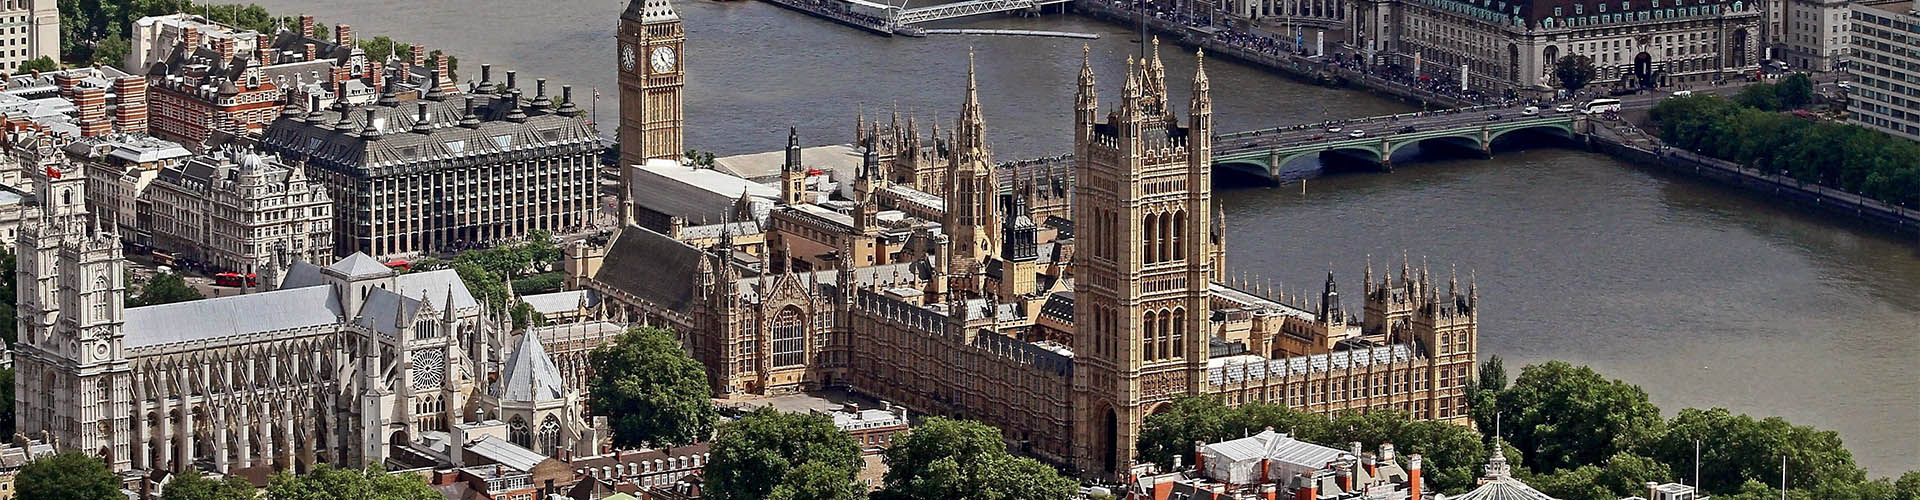 Parliament - Discover London Tours